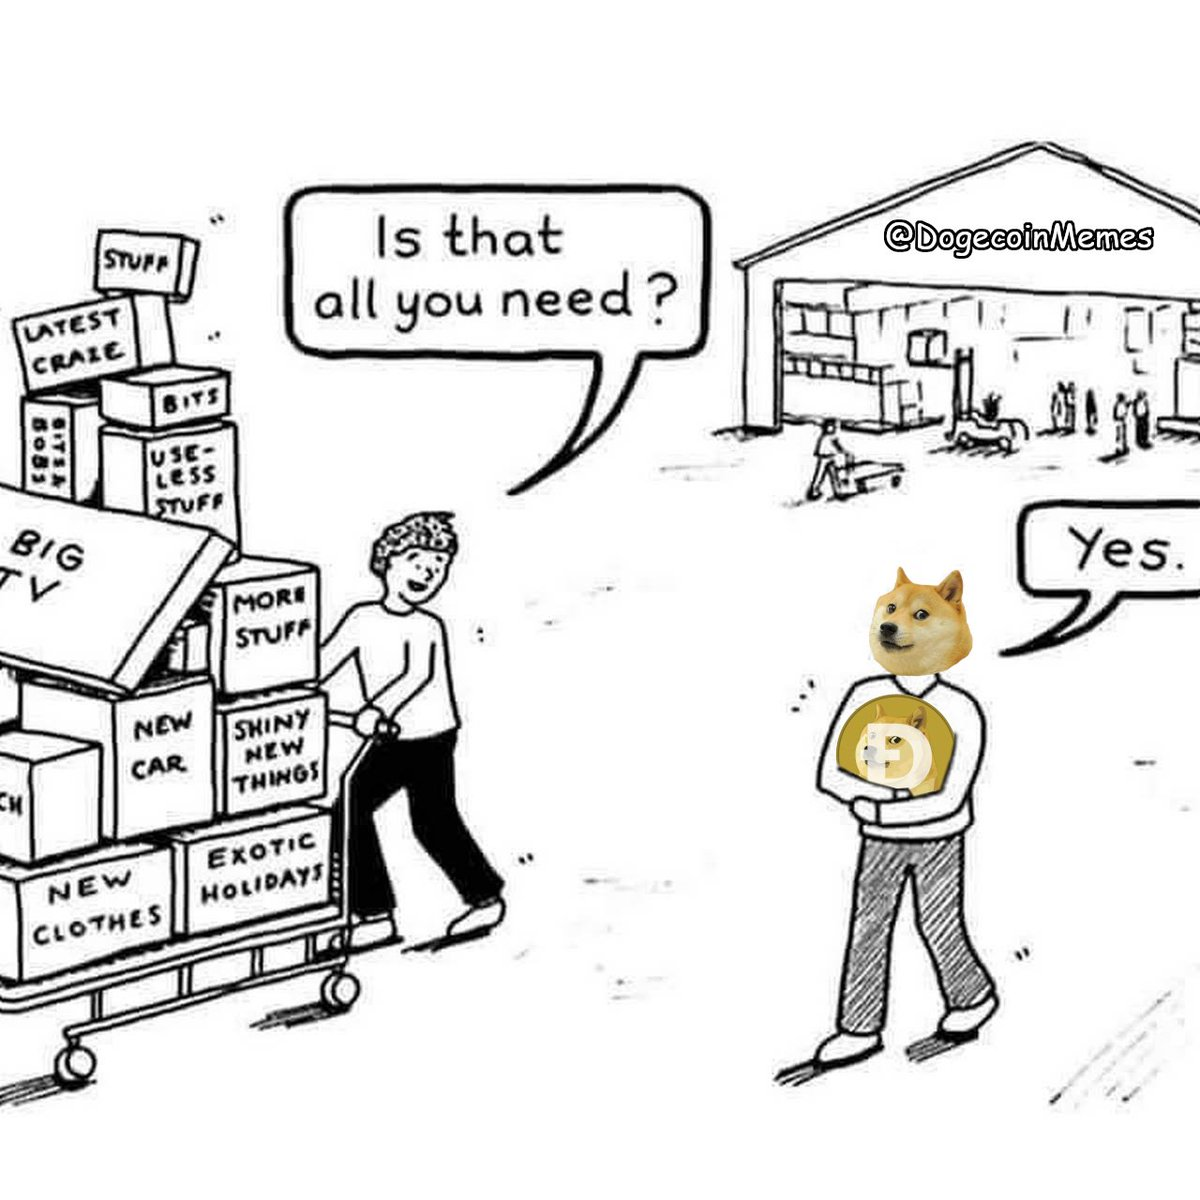 #Dogecoin #memes #crypto #cryptocurrency #doge #tothemoon #wow #moonsoon #dogecoinmoon #thegoodstuff #muchfunny #suchmemes #happydoge #moon #needs #happiness